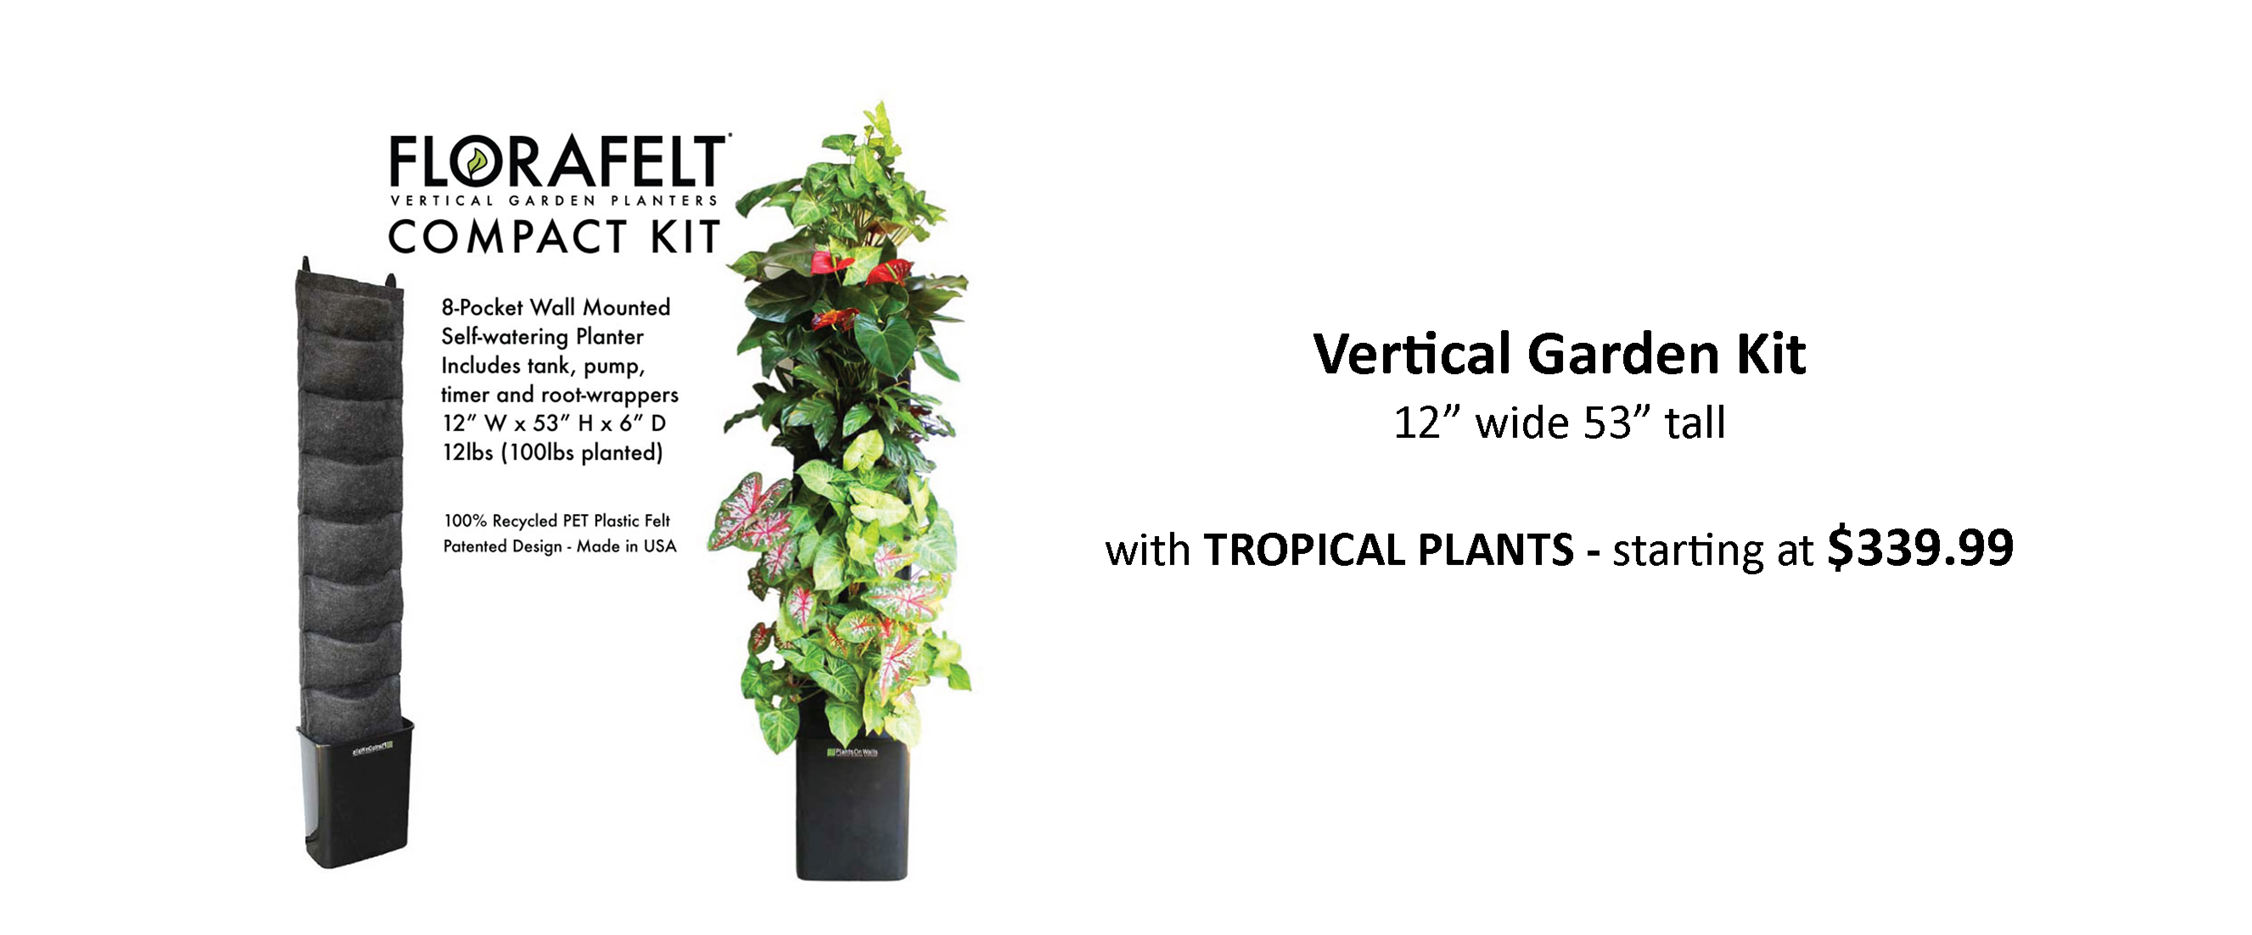 Living Wall Planter for Easy Vertical Gardens Pre Planted with Tropical Plants for Indoor or Outdoor Use With Automatic Irrigation System